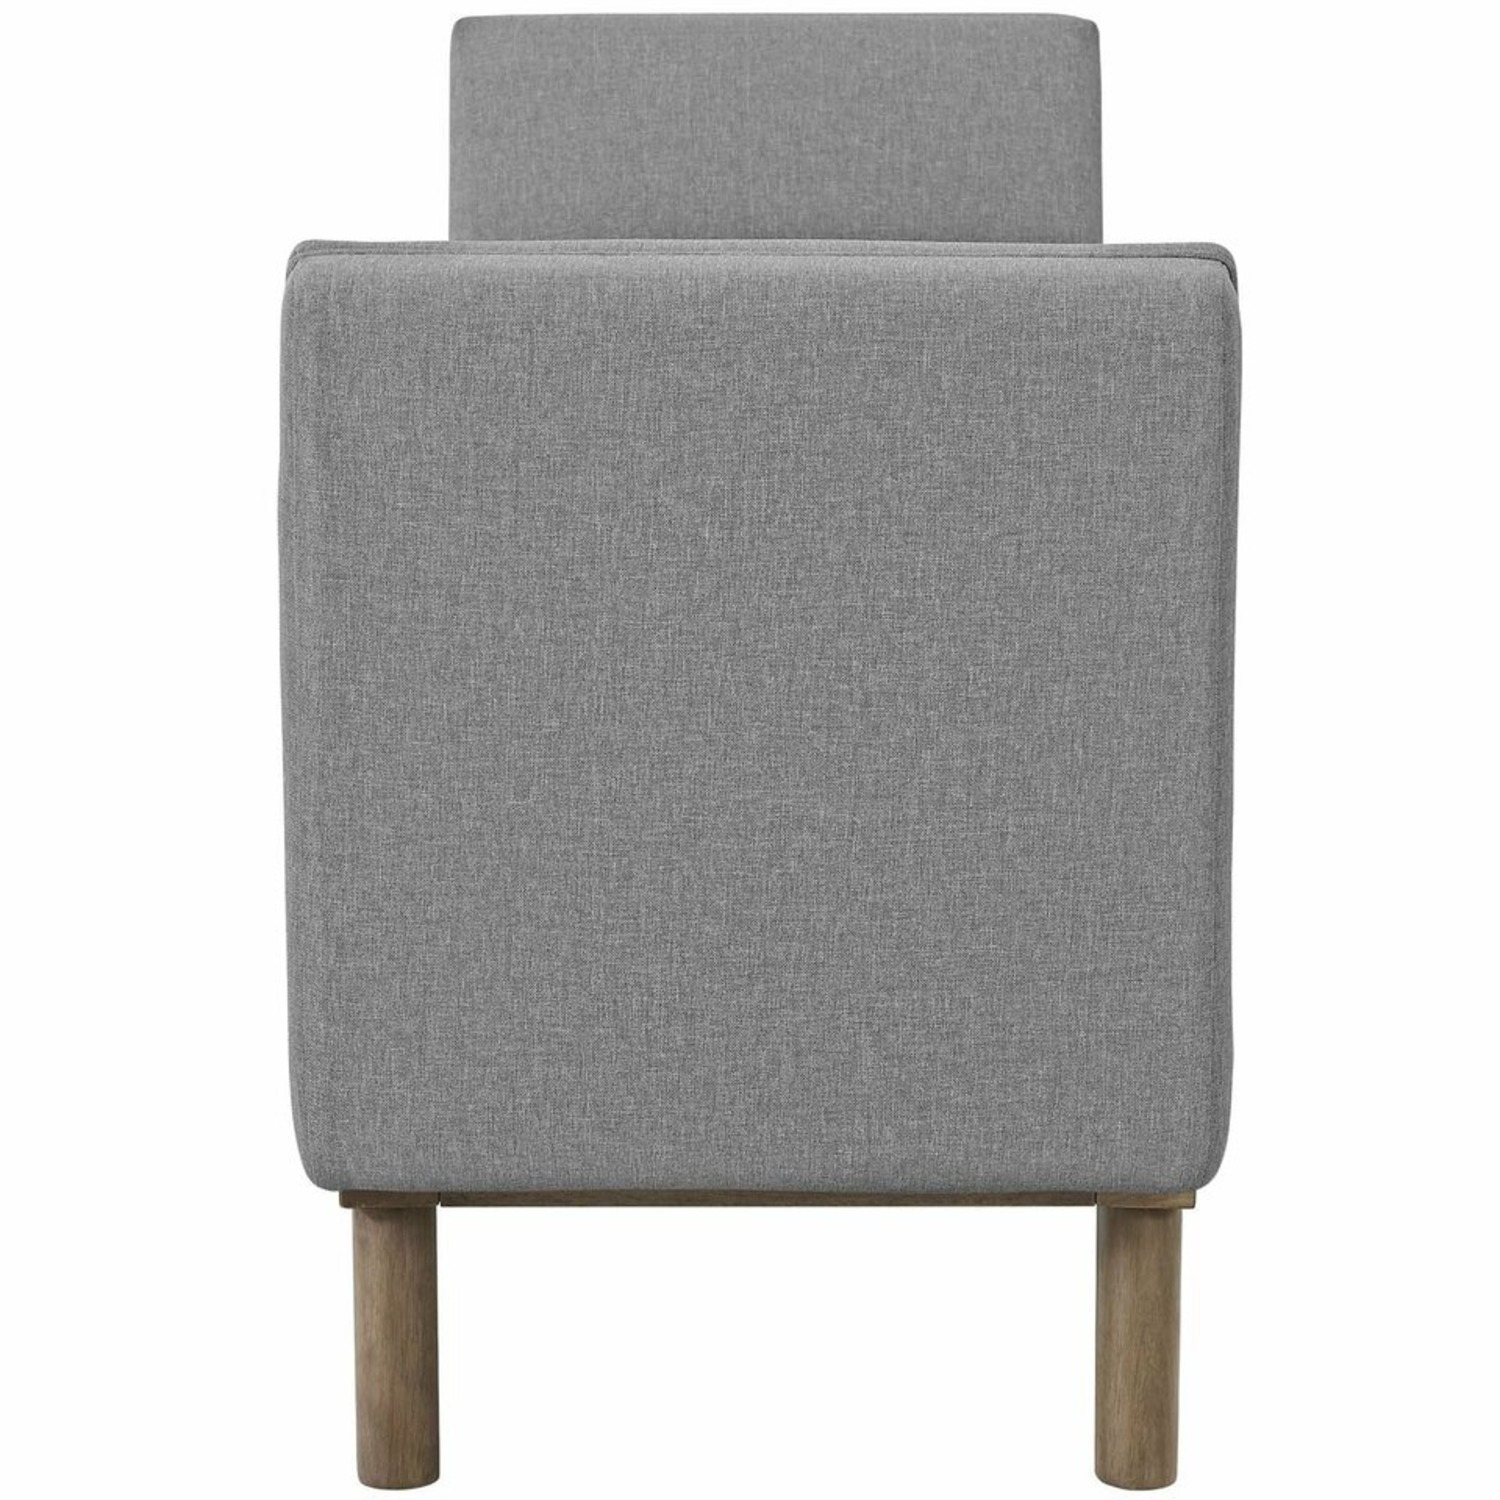 Accent Bench In Tufted Light Gray Fabric Finish - image-3